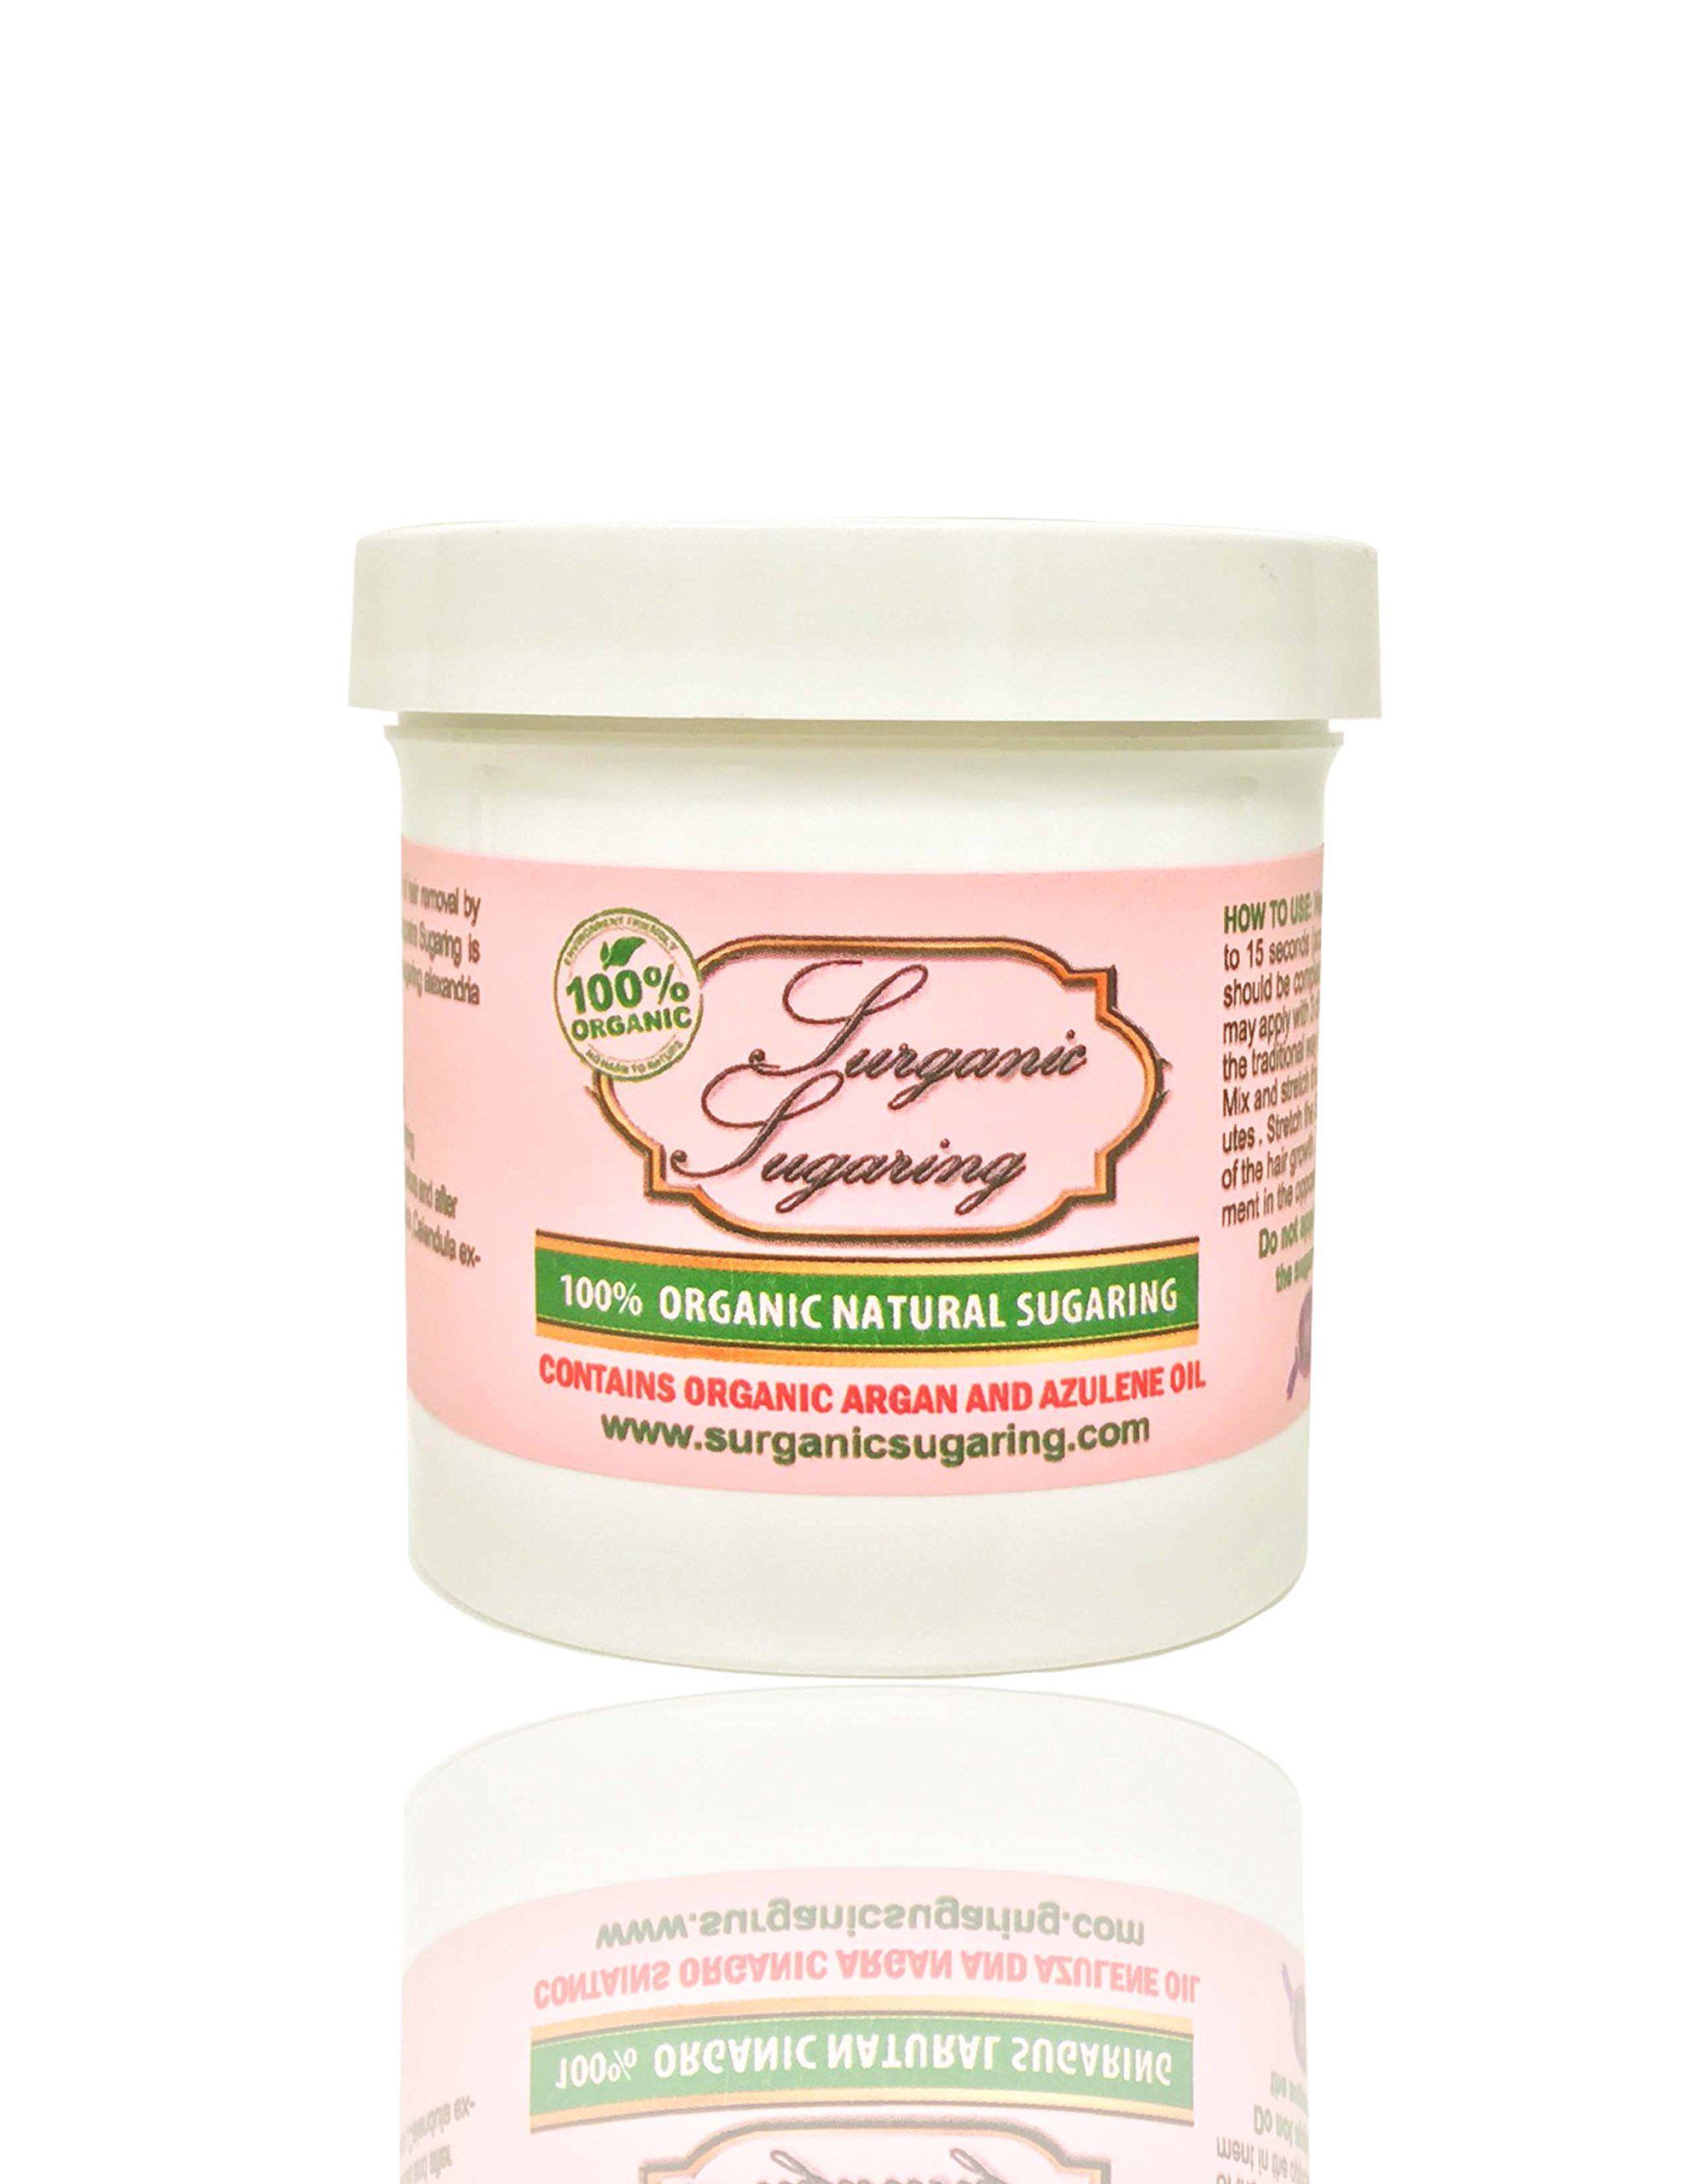 10 Oz Sugaring Organic Standard Sugaring Hair Removal to Use with Hand